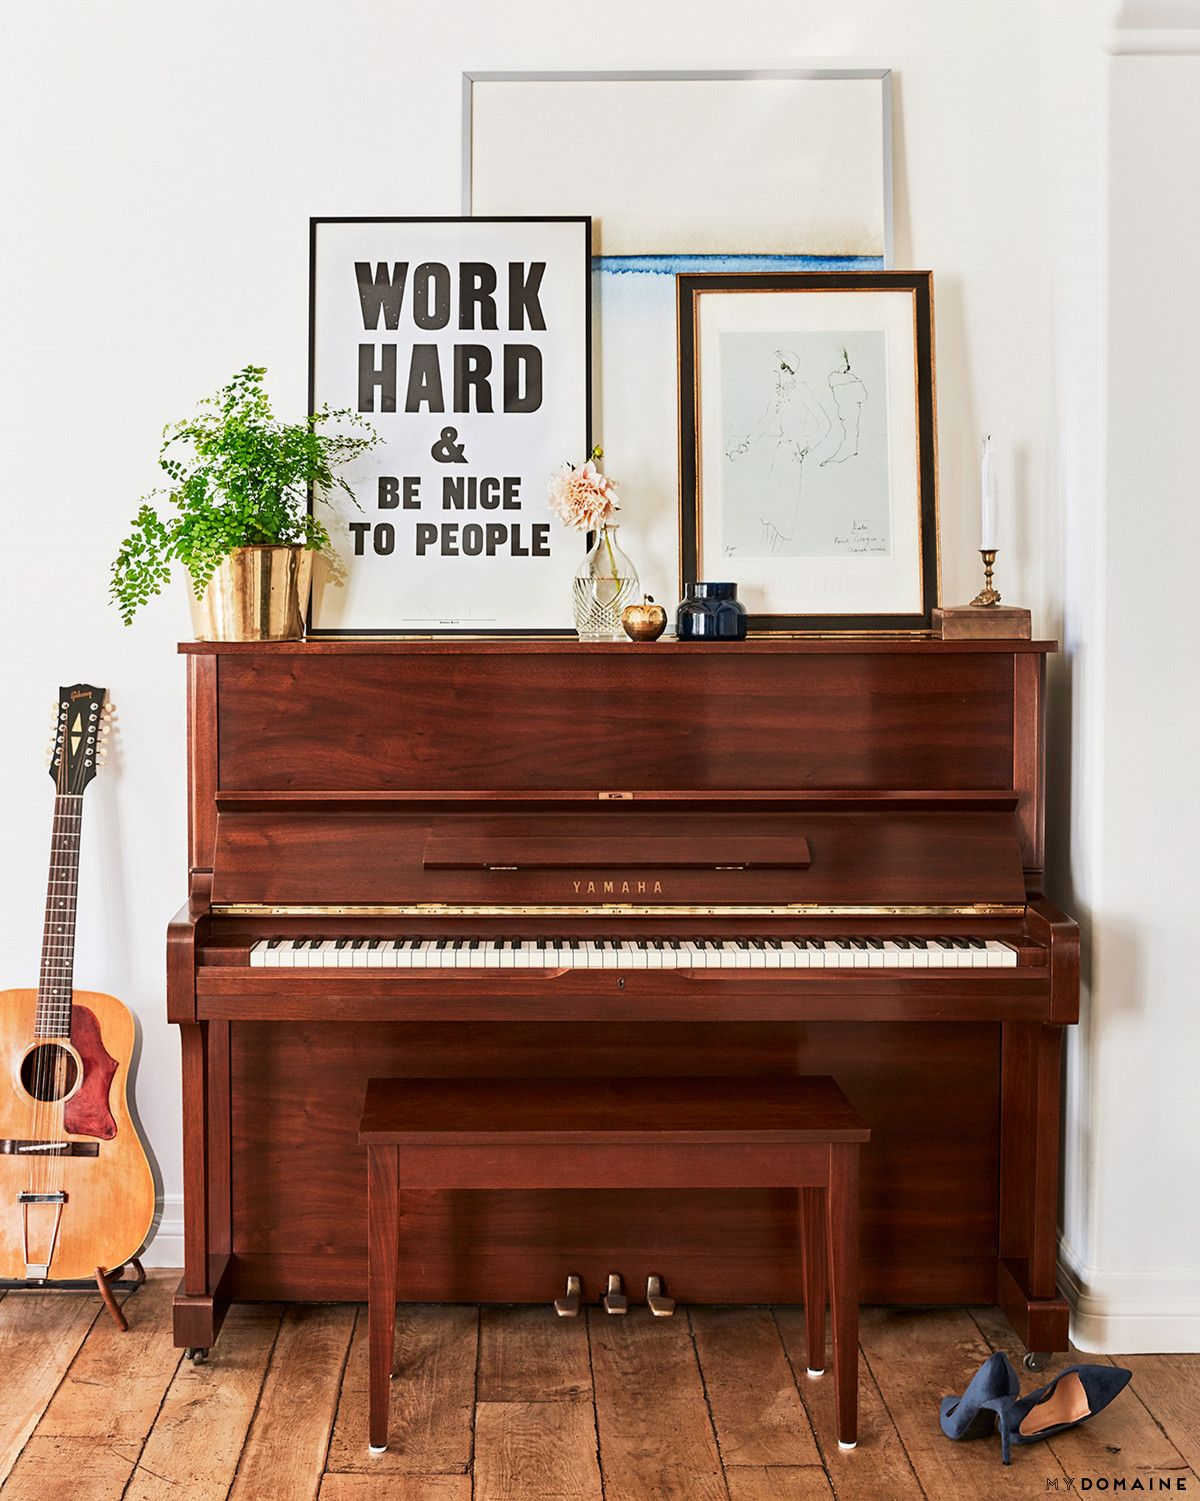 Lauren Conrad's living space with a vintage piano with art propped above and an indoor plant